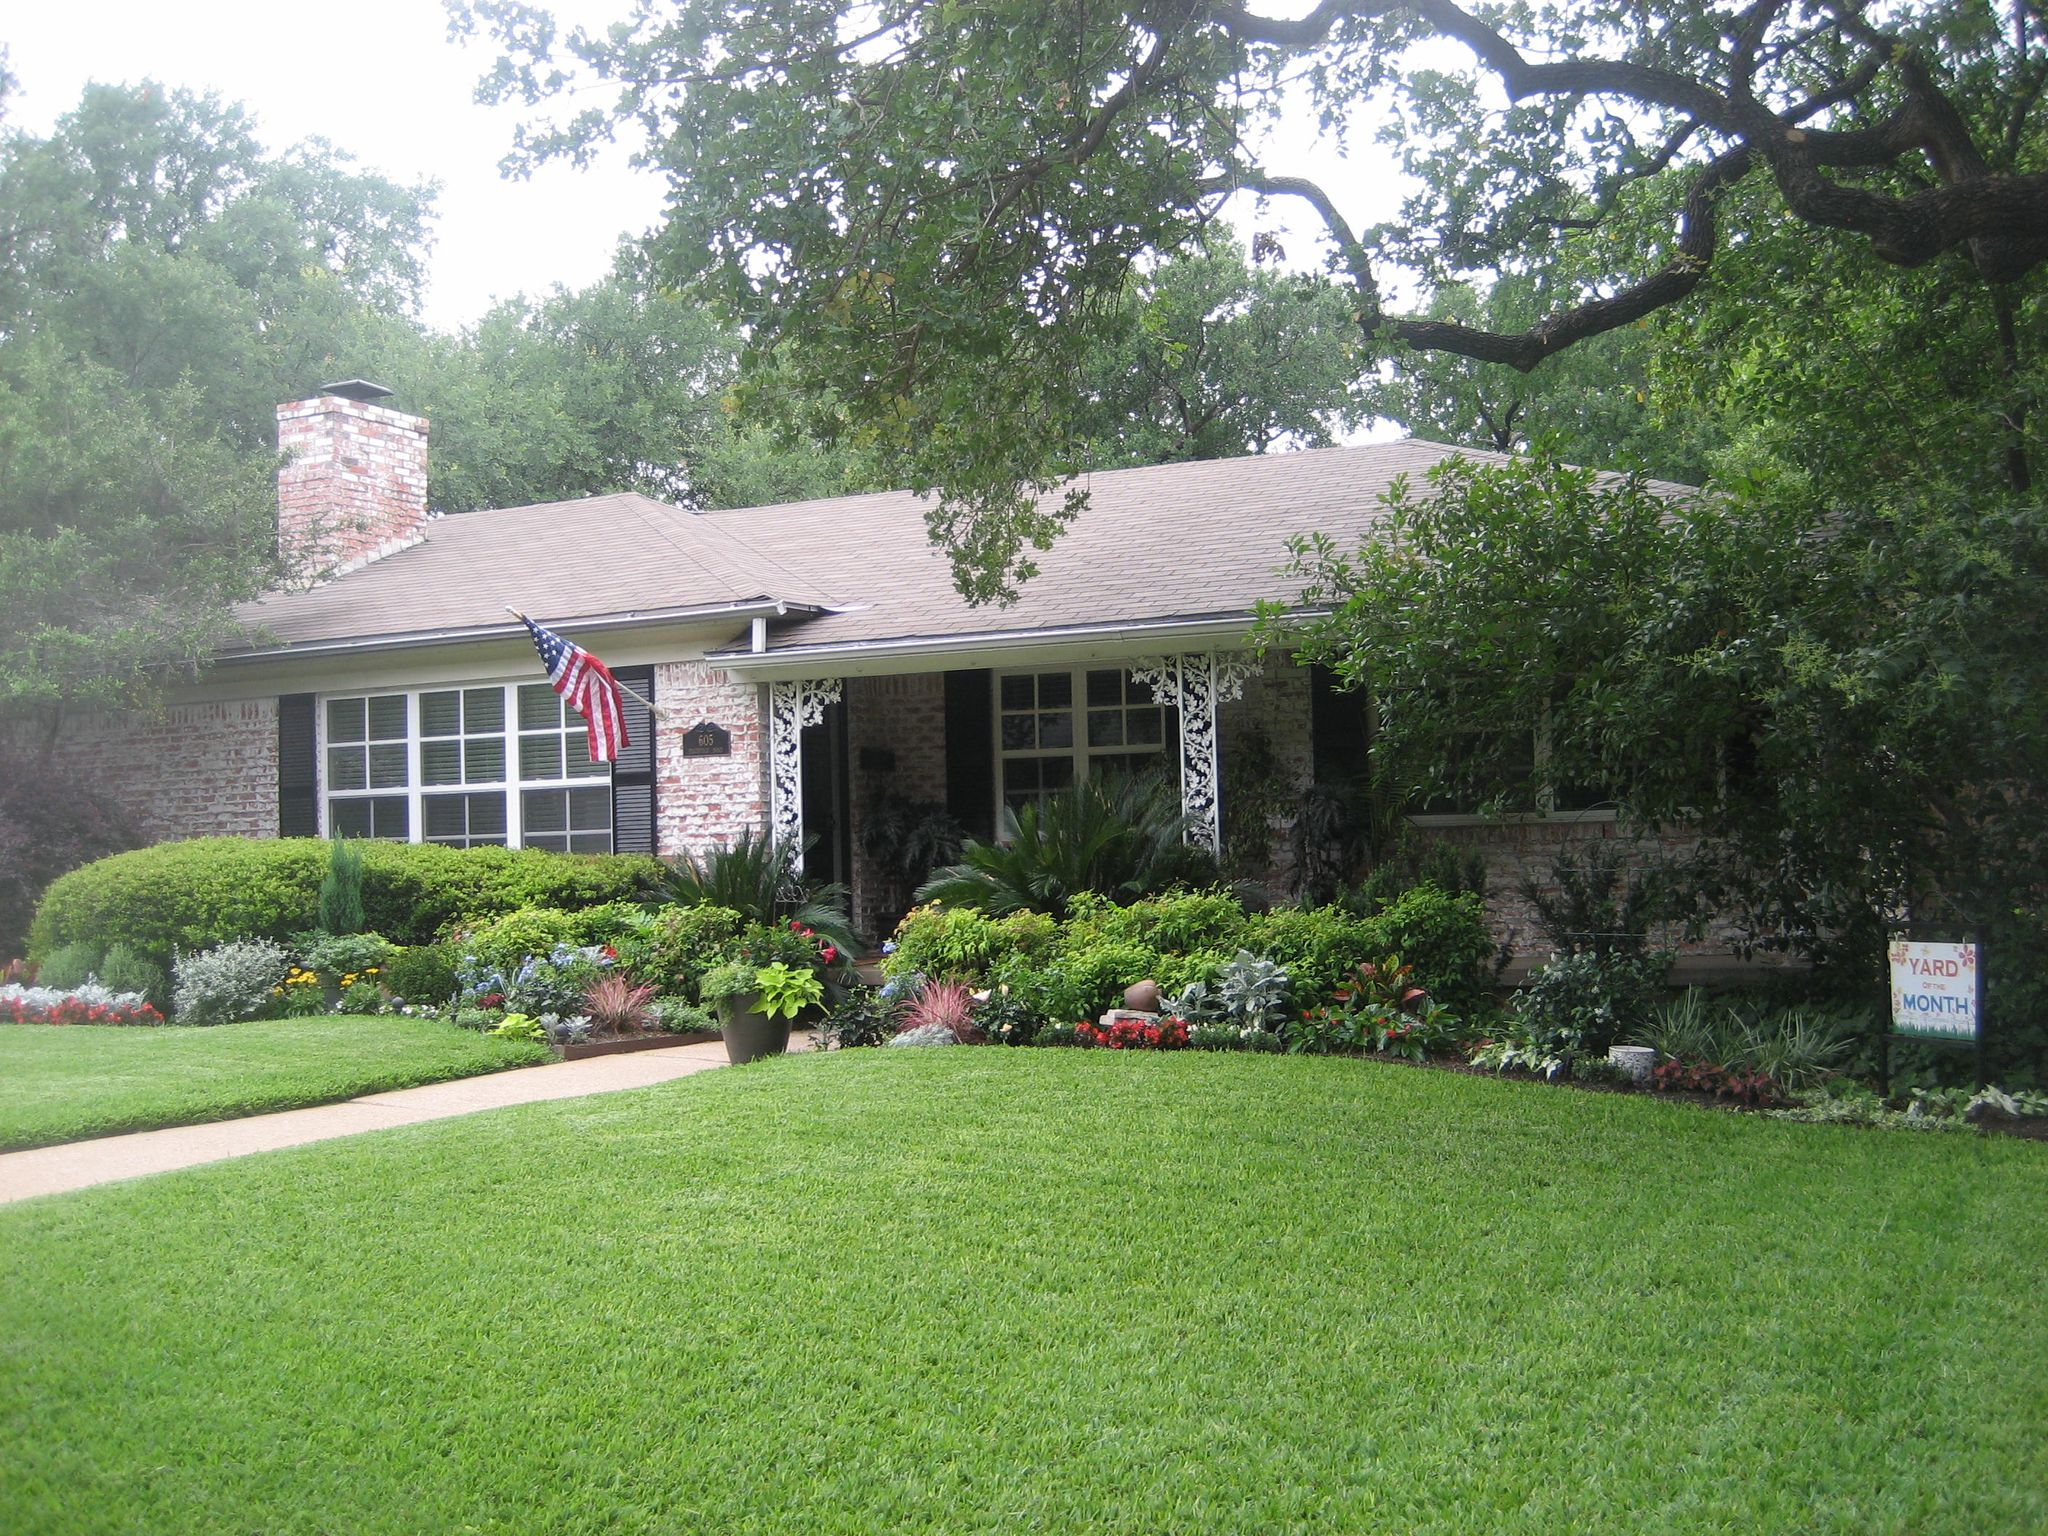 605 edgefield rd fort worth tx 76107 estimate and home details